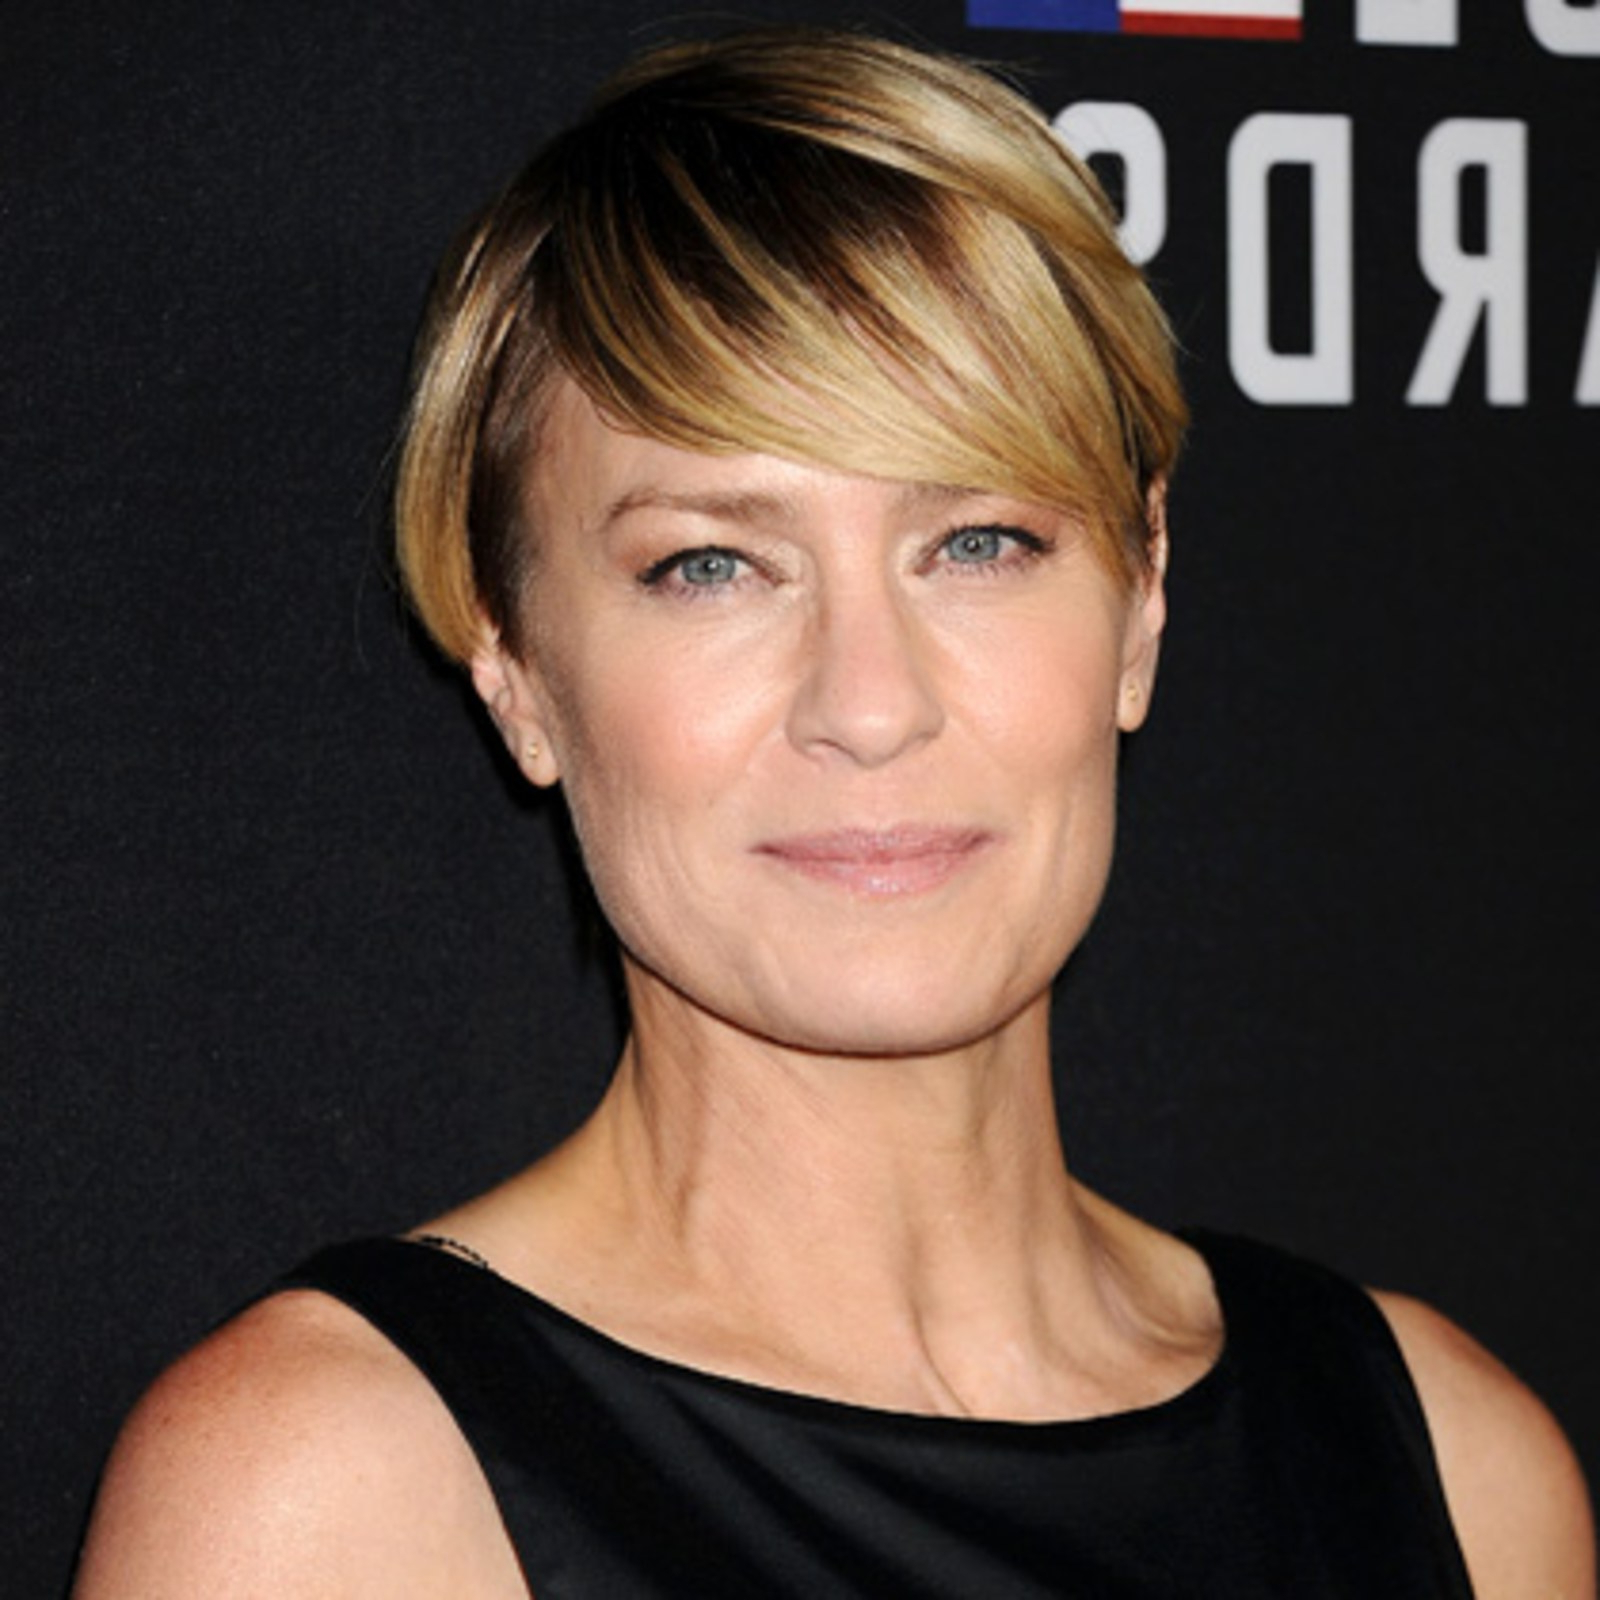 6 Tips For Styling Your Pixie Cut – Allure Intended For Sleeked Down Pixie Hairstyles With Texturizing (View 12 of 20)